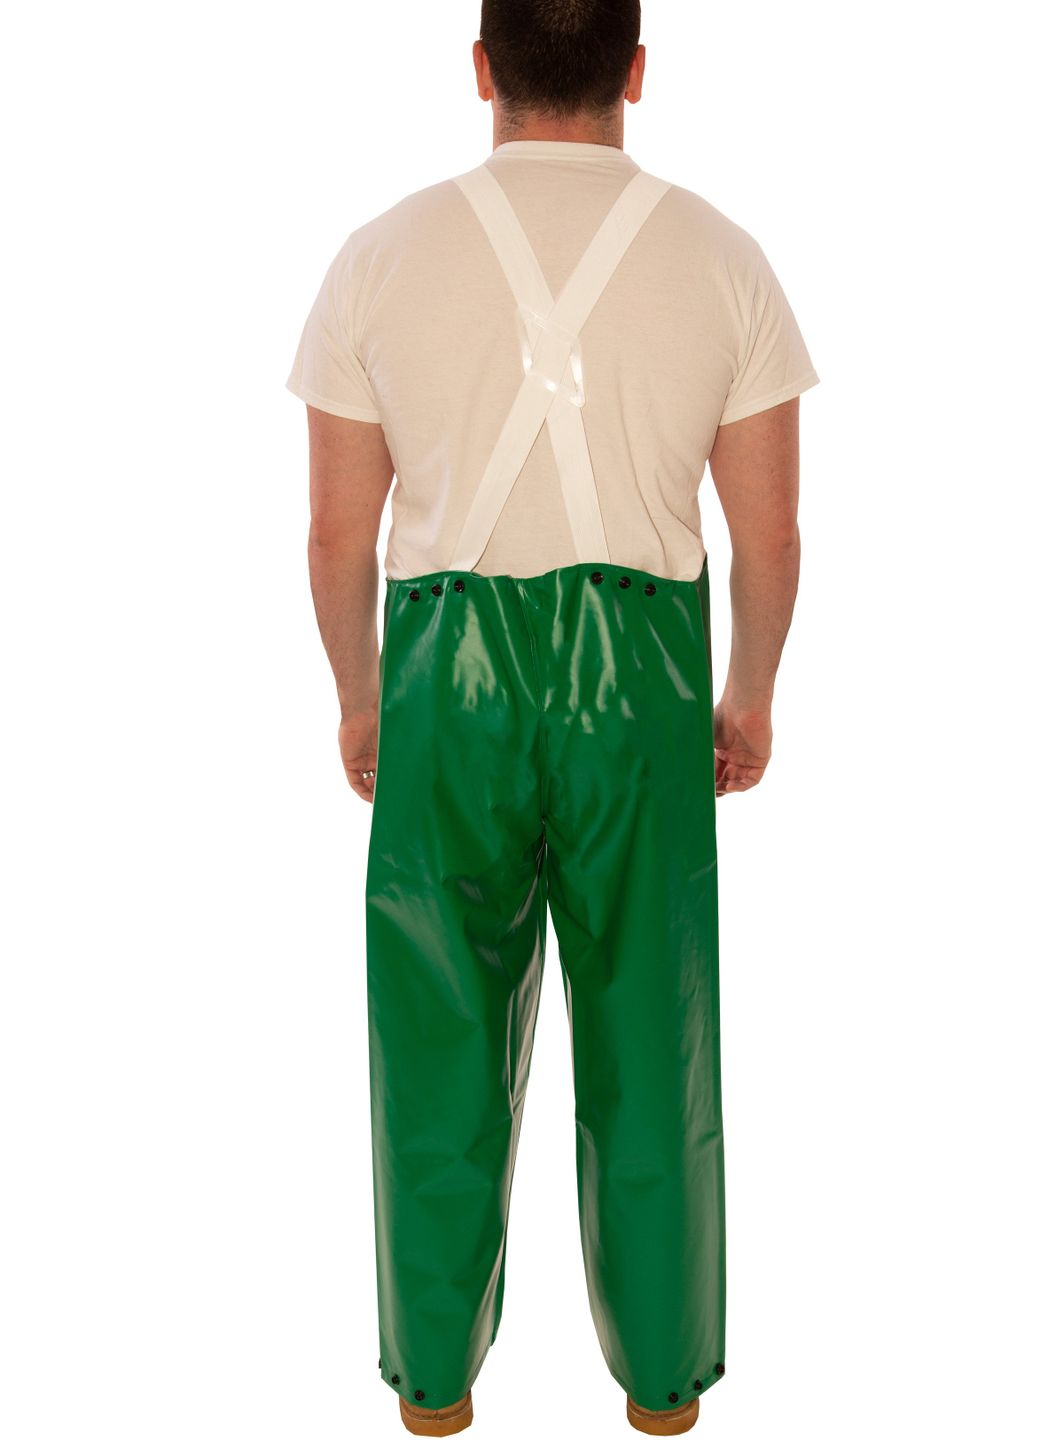 tingley-o41008-safetyflex-fire-resistant-overalls-pvc-coated-chemical-resistant-back.jpg